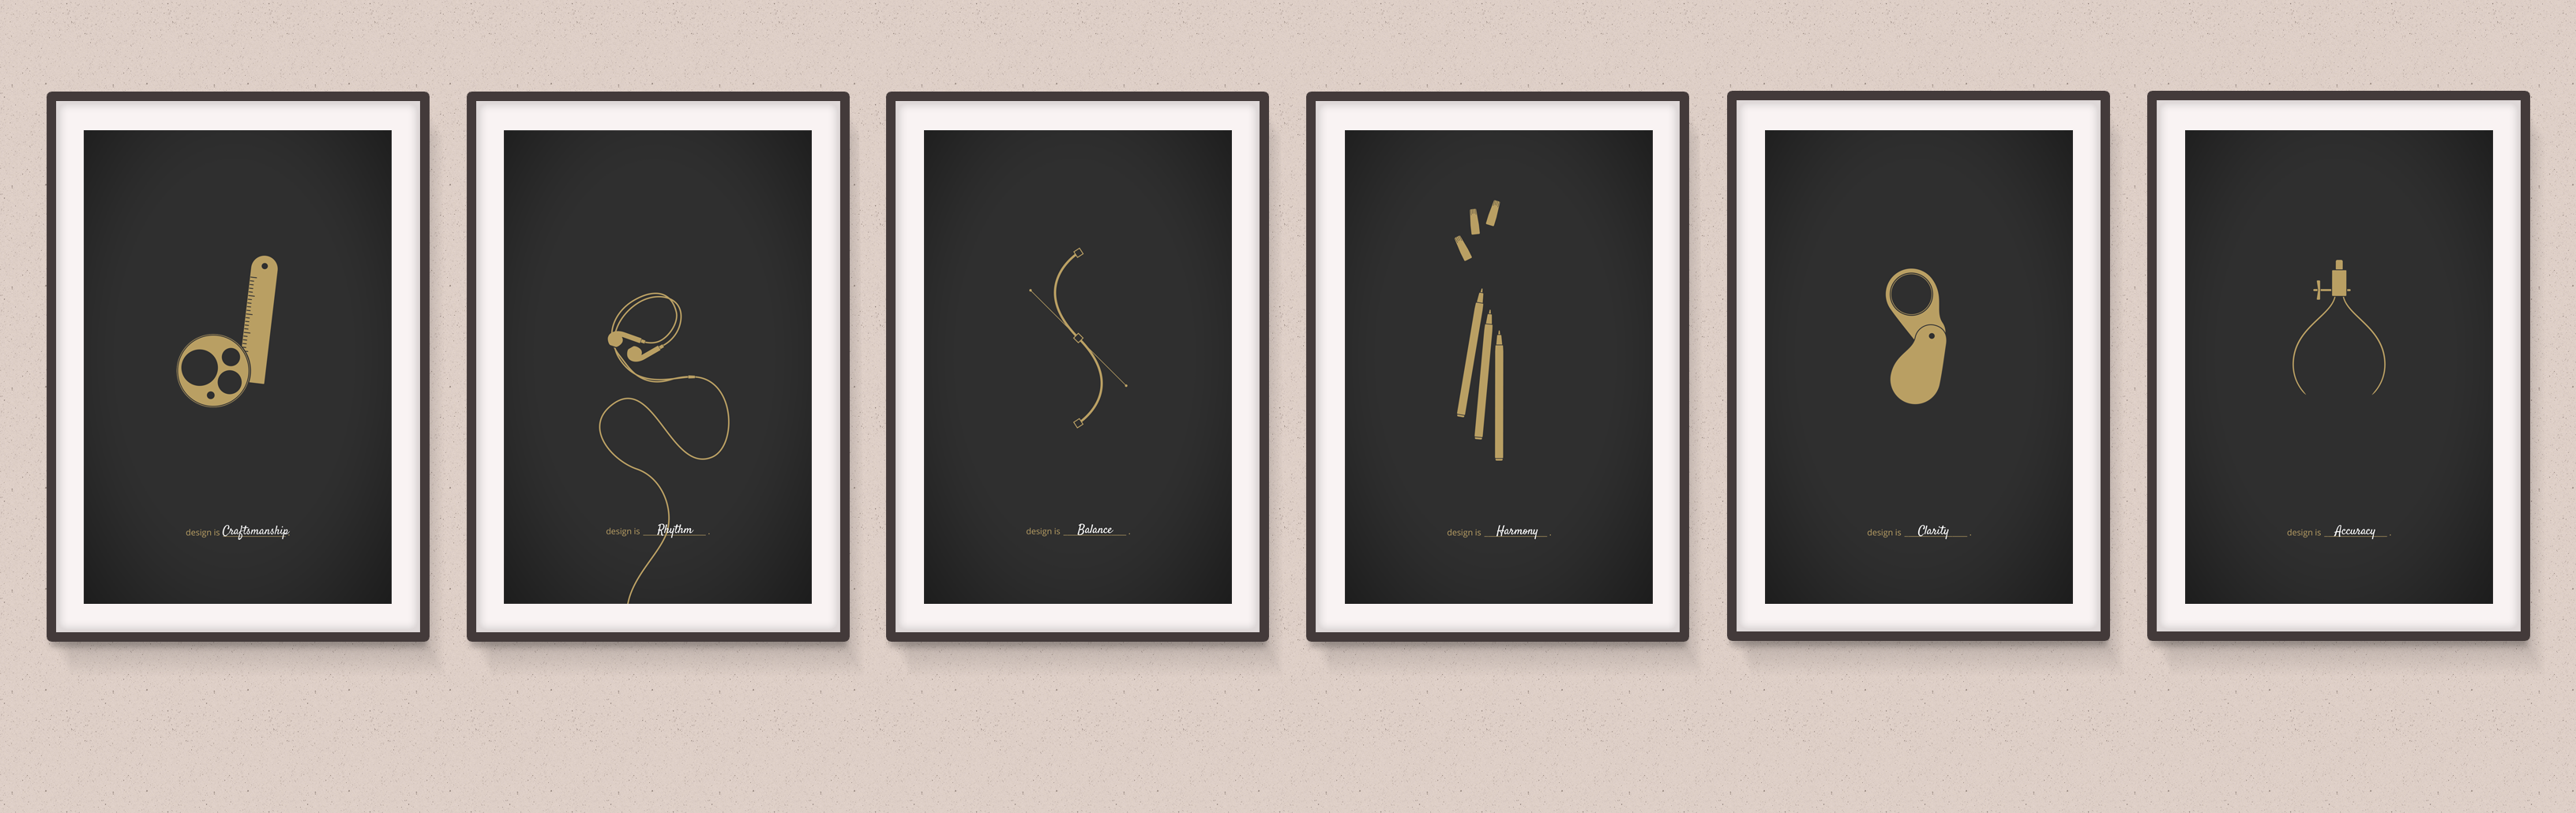 Design is posters